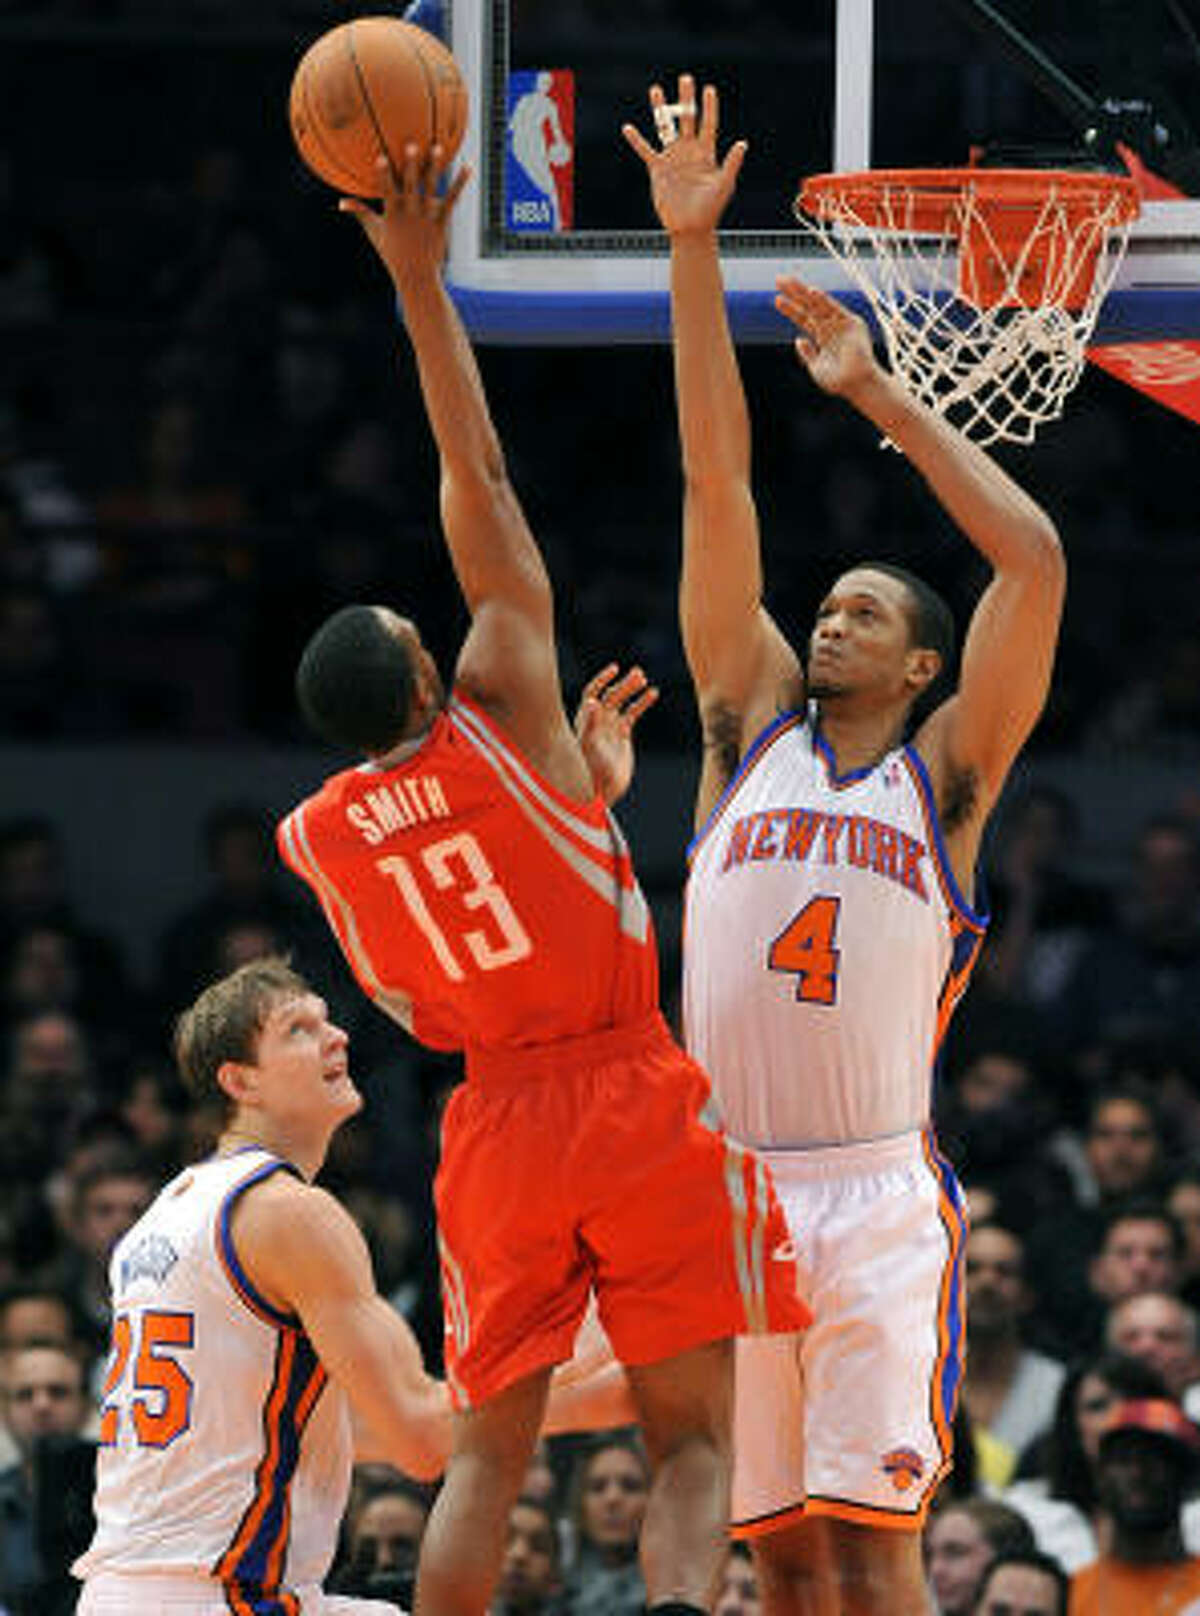 Rockets guard Ishmael Smith (13) shoots between Knicks center Timofey Mozgov (25) and forward Anthony Randolph (4) during the first quarter.